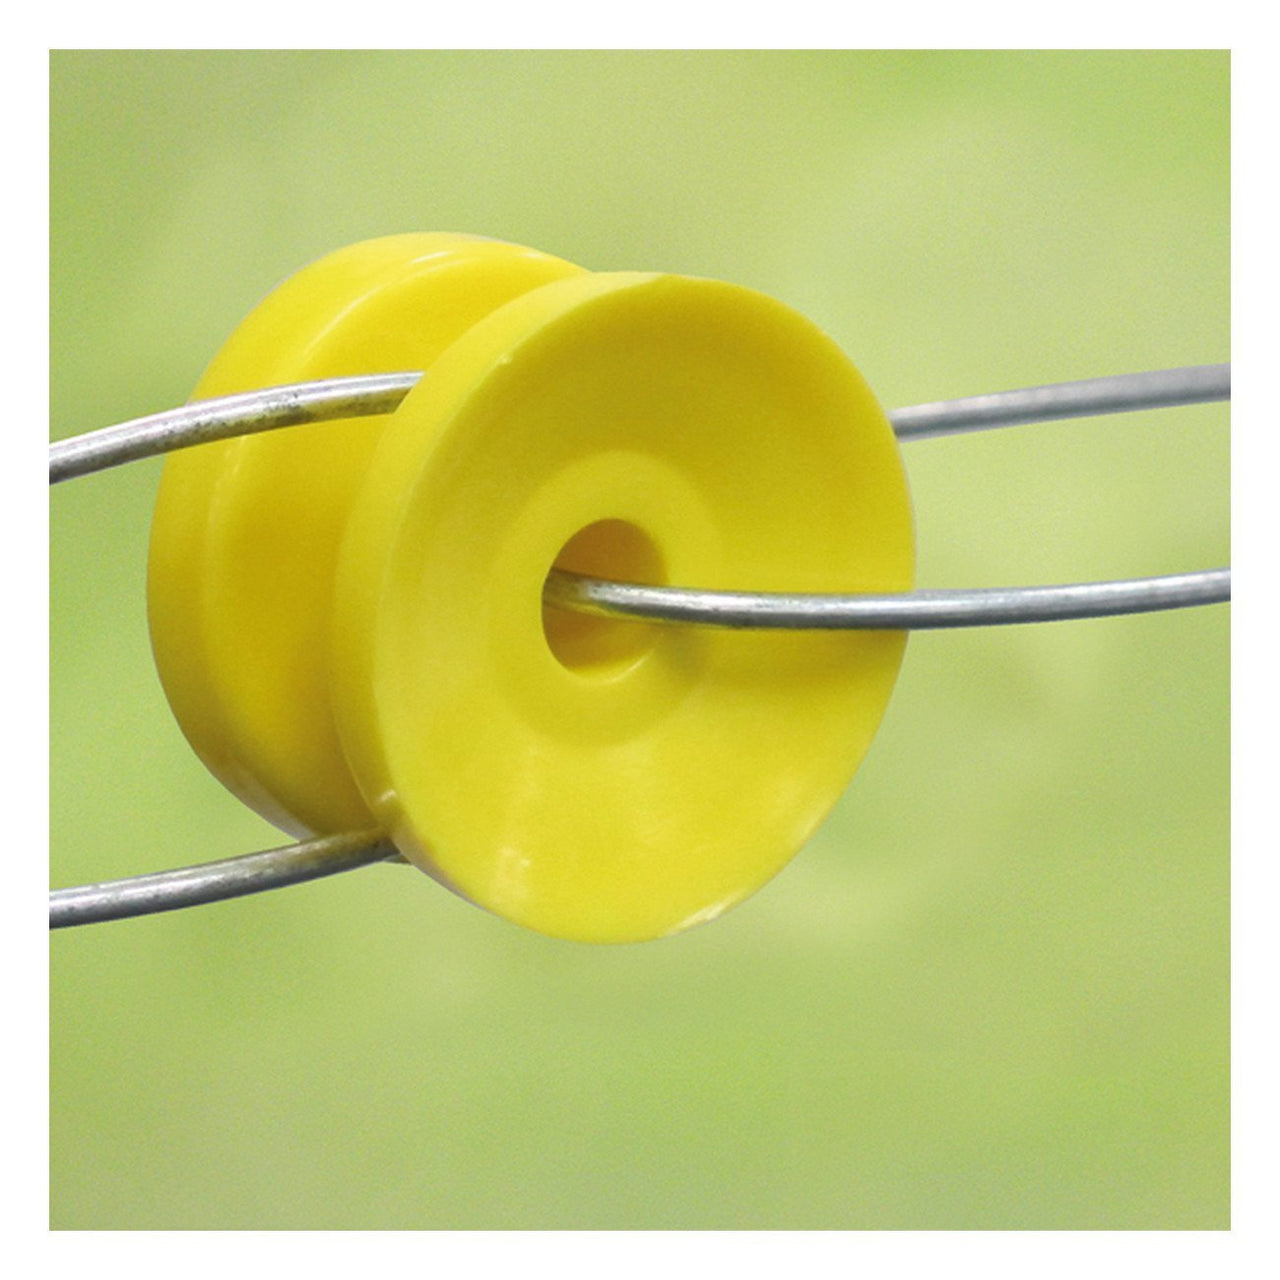 Patriot Corner Bobbin Insulator - Yellow (10 Pack) - Fencing Patriot - Canada